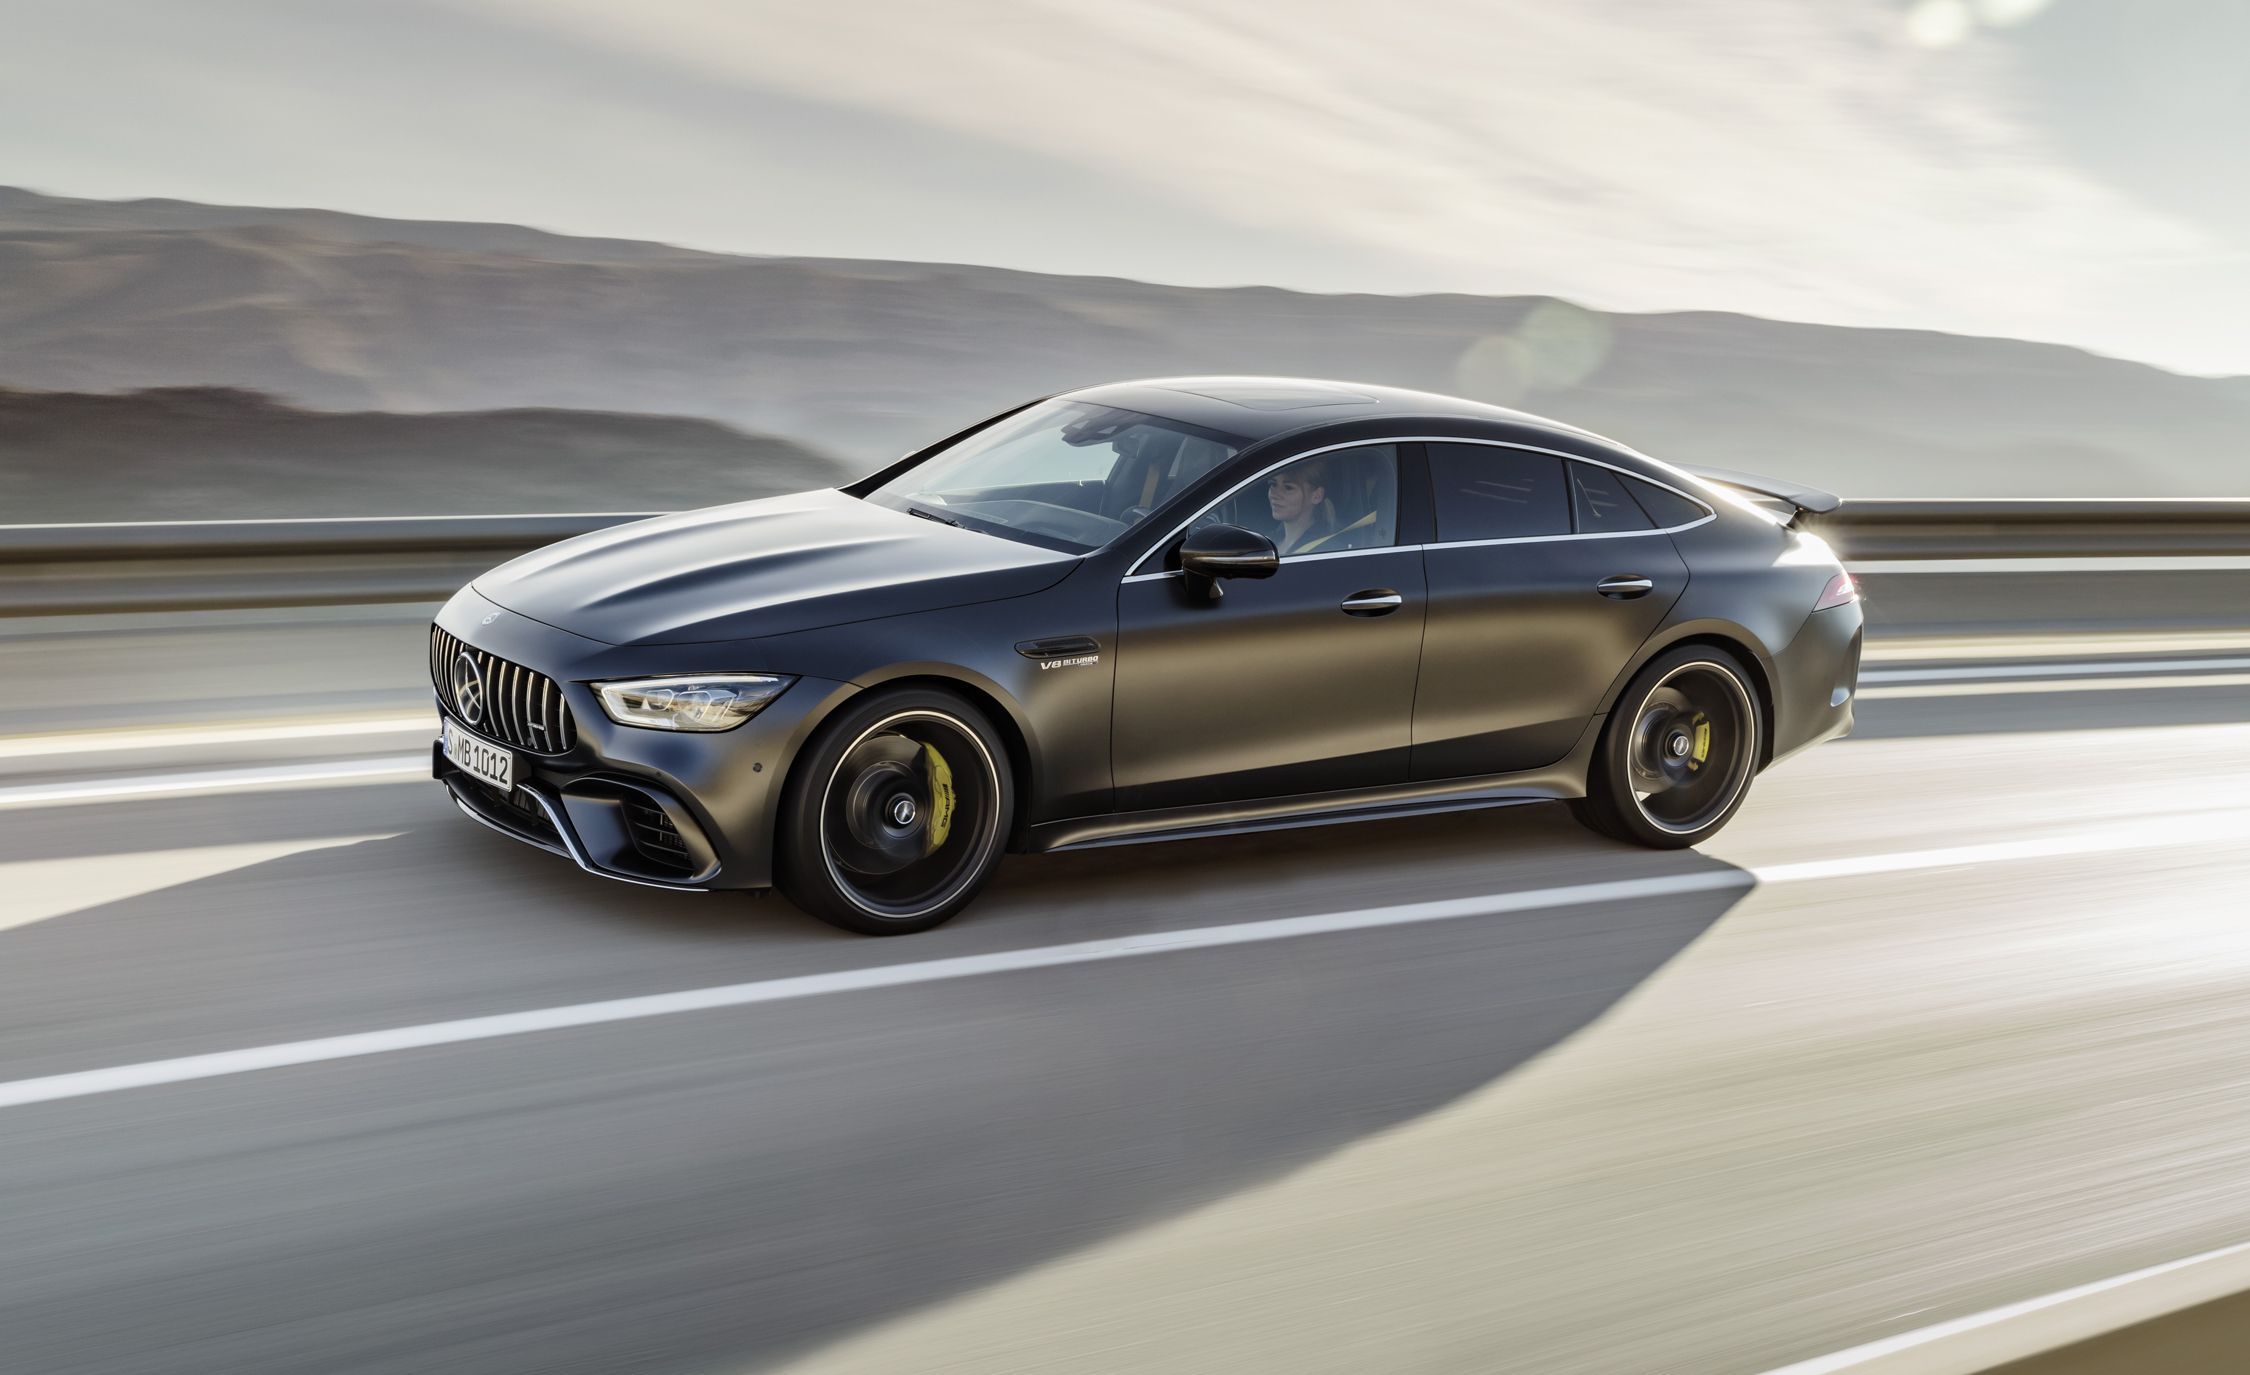 mercedes amg gt63 gt63 s reviews mercedes amg gt63 gt63 s price photos and specs car. Black Bedroom Furniture Sets. Home Design Ideas